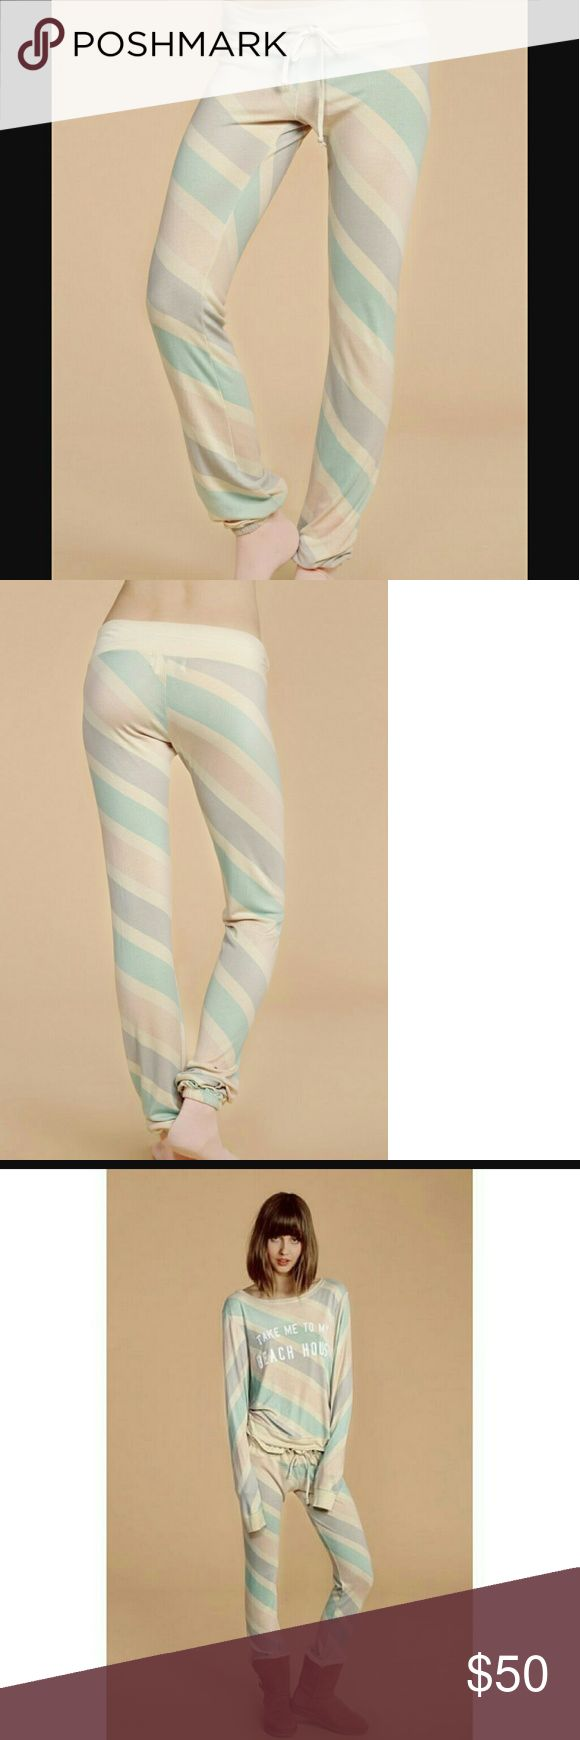 NWT, Wildfox 80's Streep Malibu skinny sweats Last 2 in my shop, NWT, elastic at ankle cuff, sinch tie waist Wildfox Pants